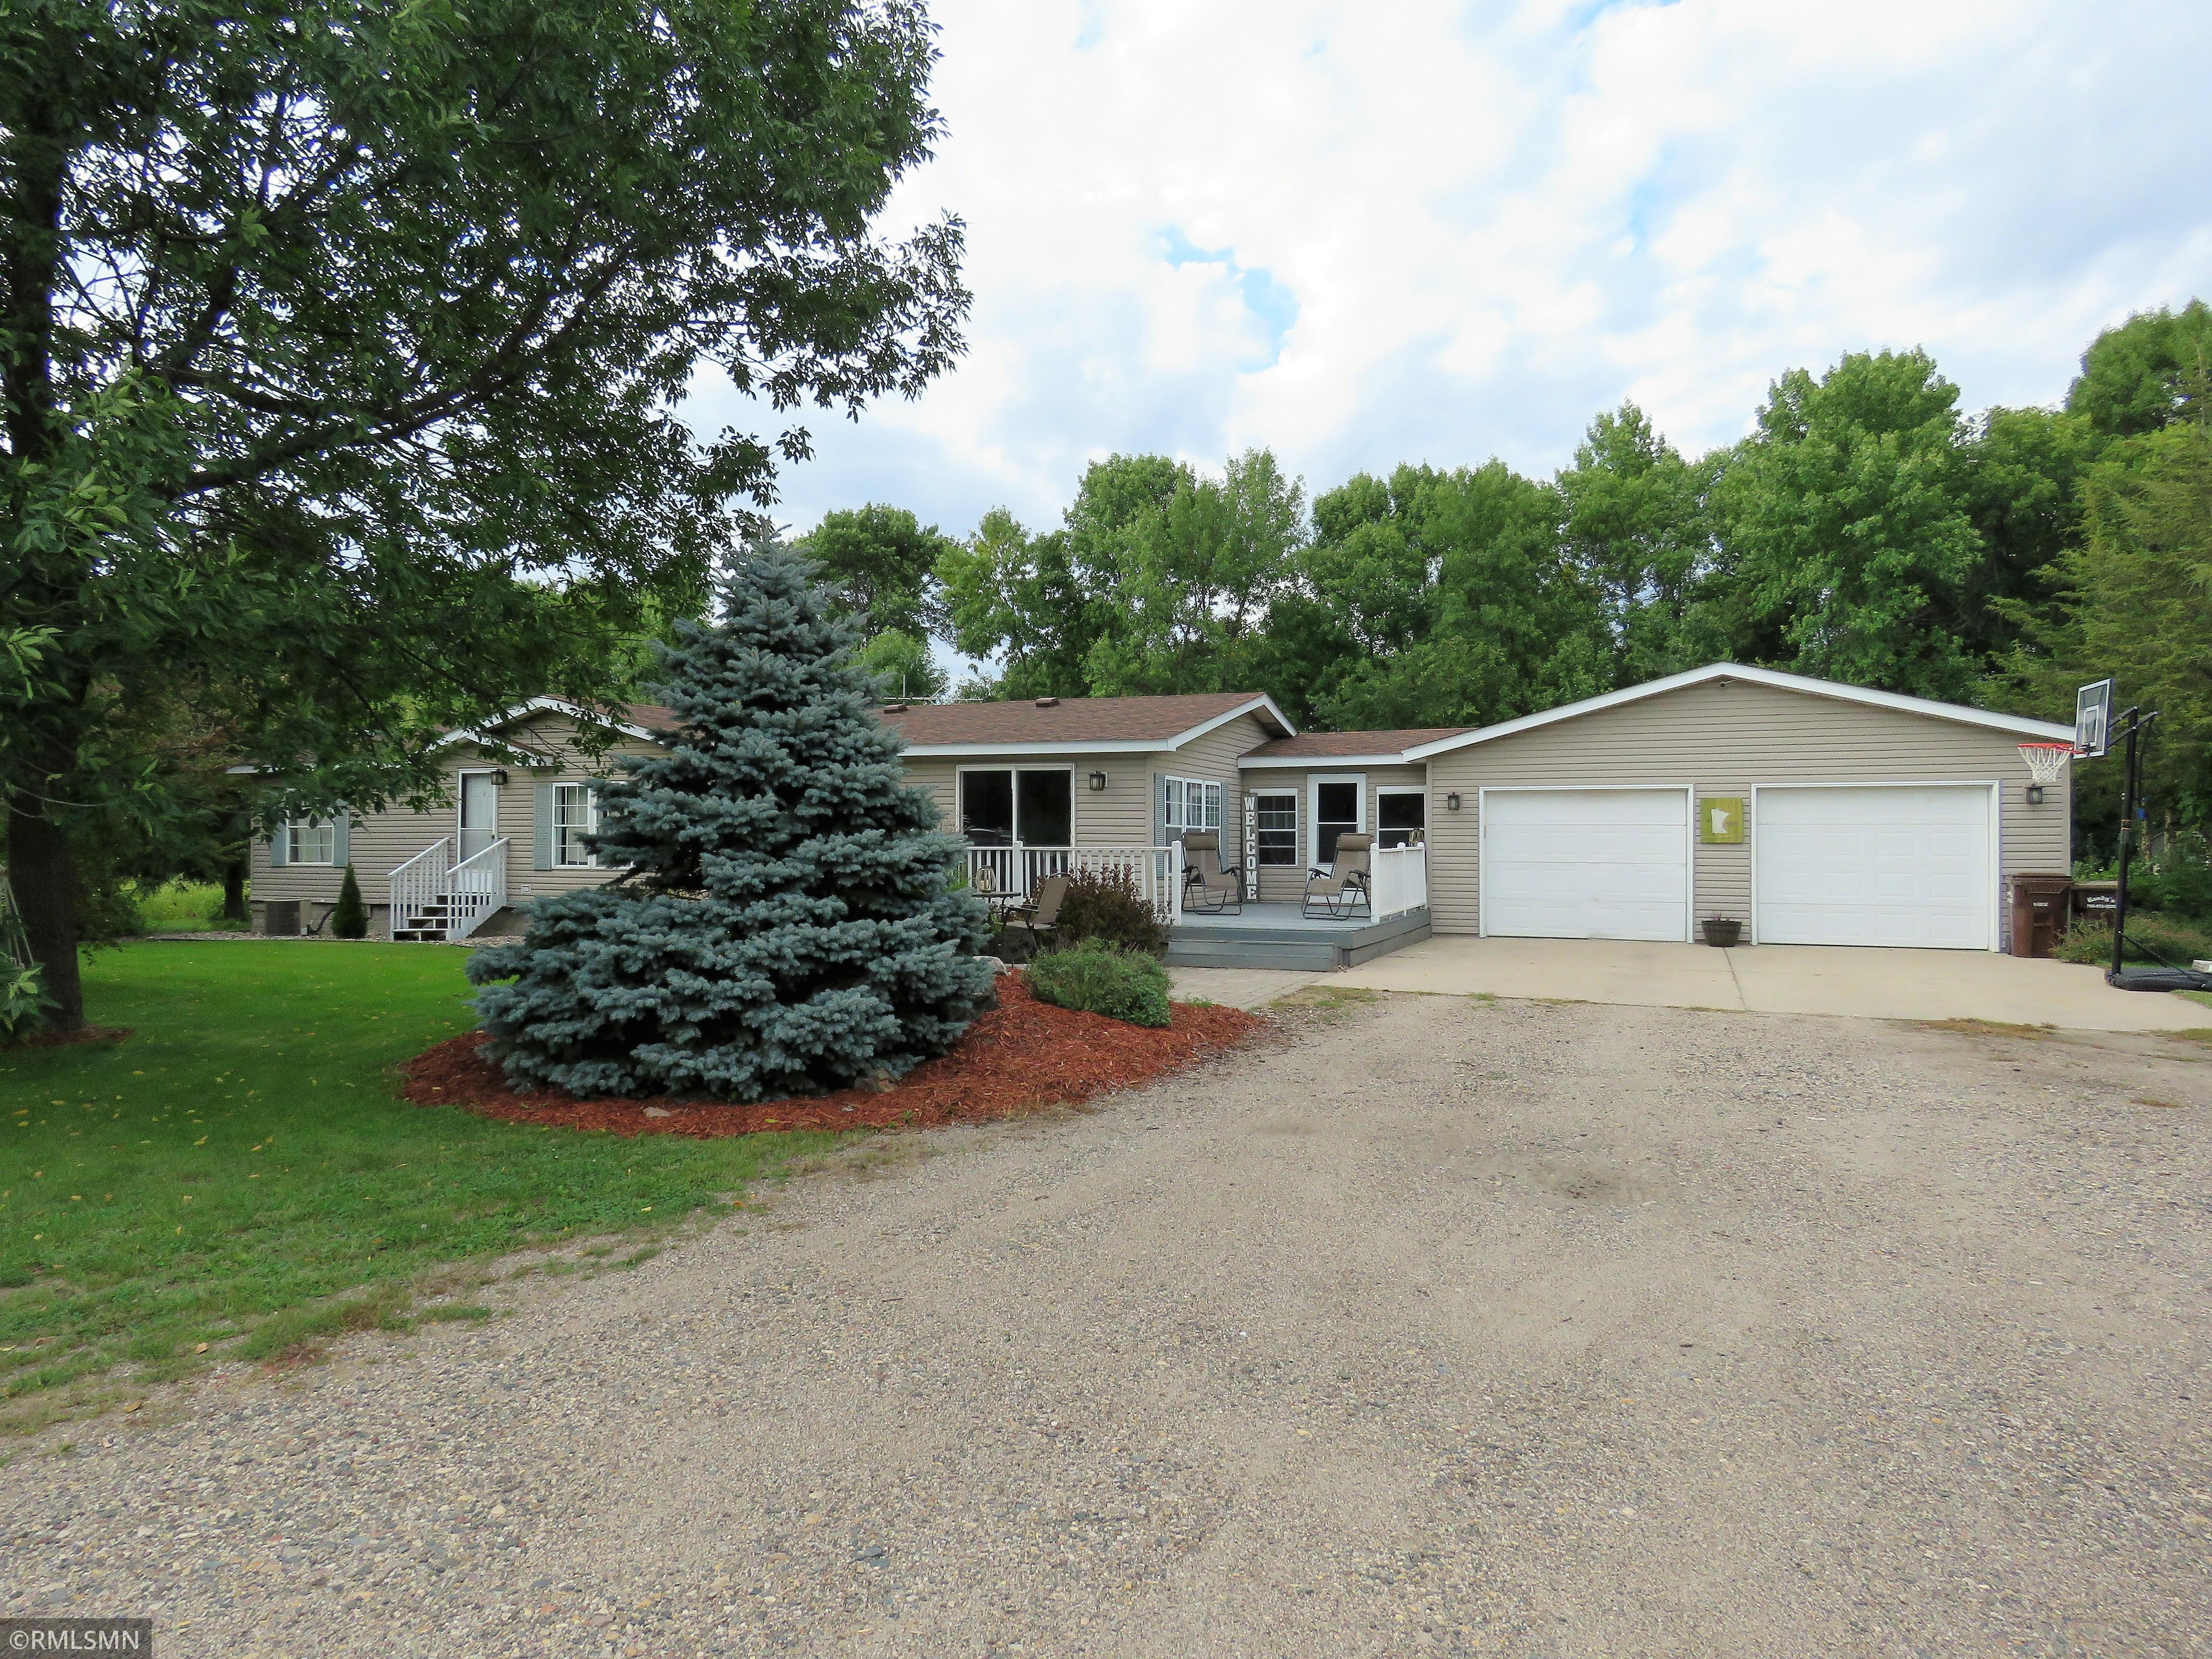 5070 10th Street NW Property Photo - Maple Lake, MN real estate listing